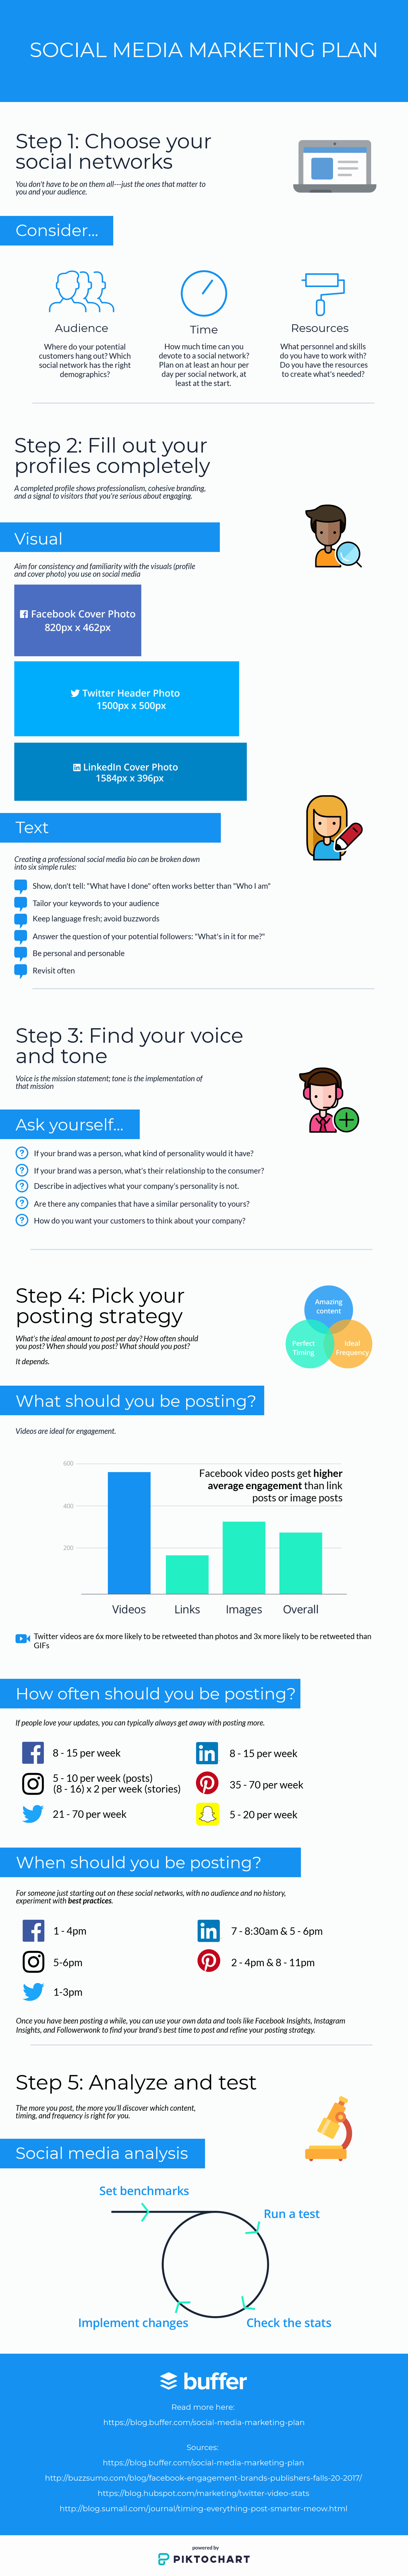 Social Media Marketing Proposal Awesome How to Create A social Media Marketing Plan From Scratch